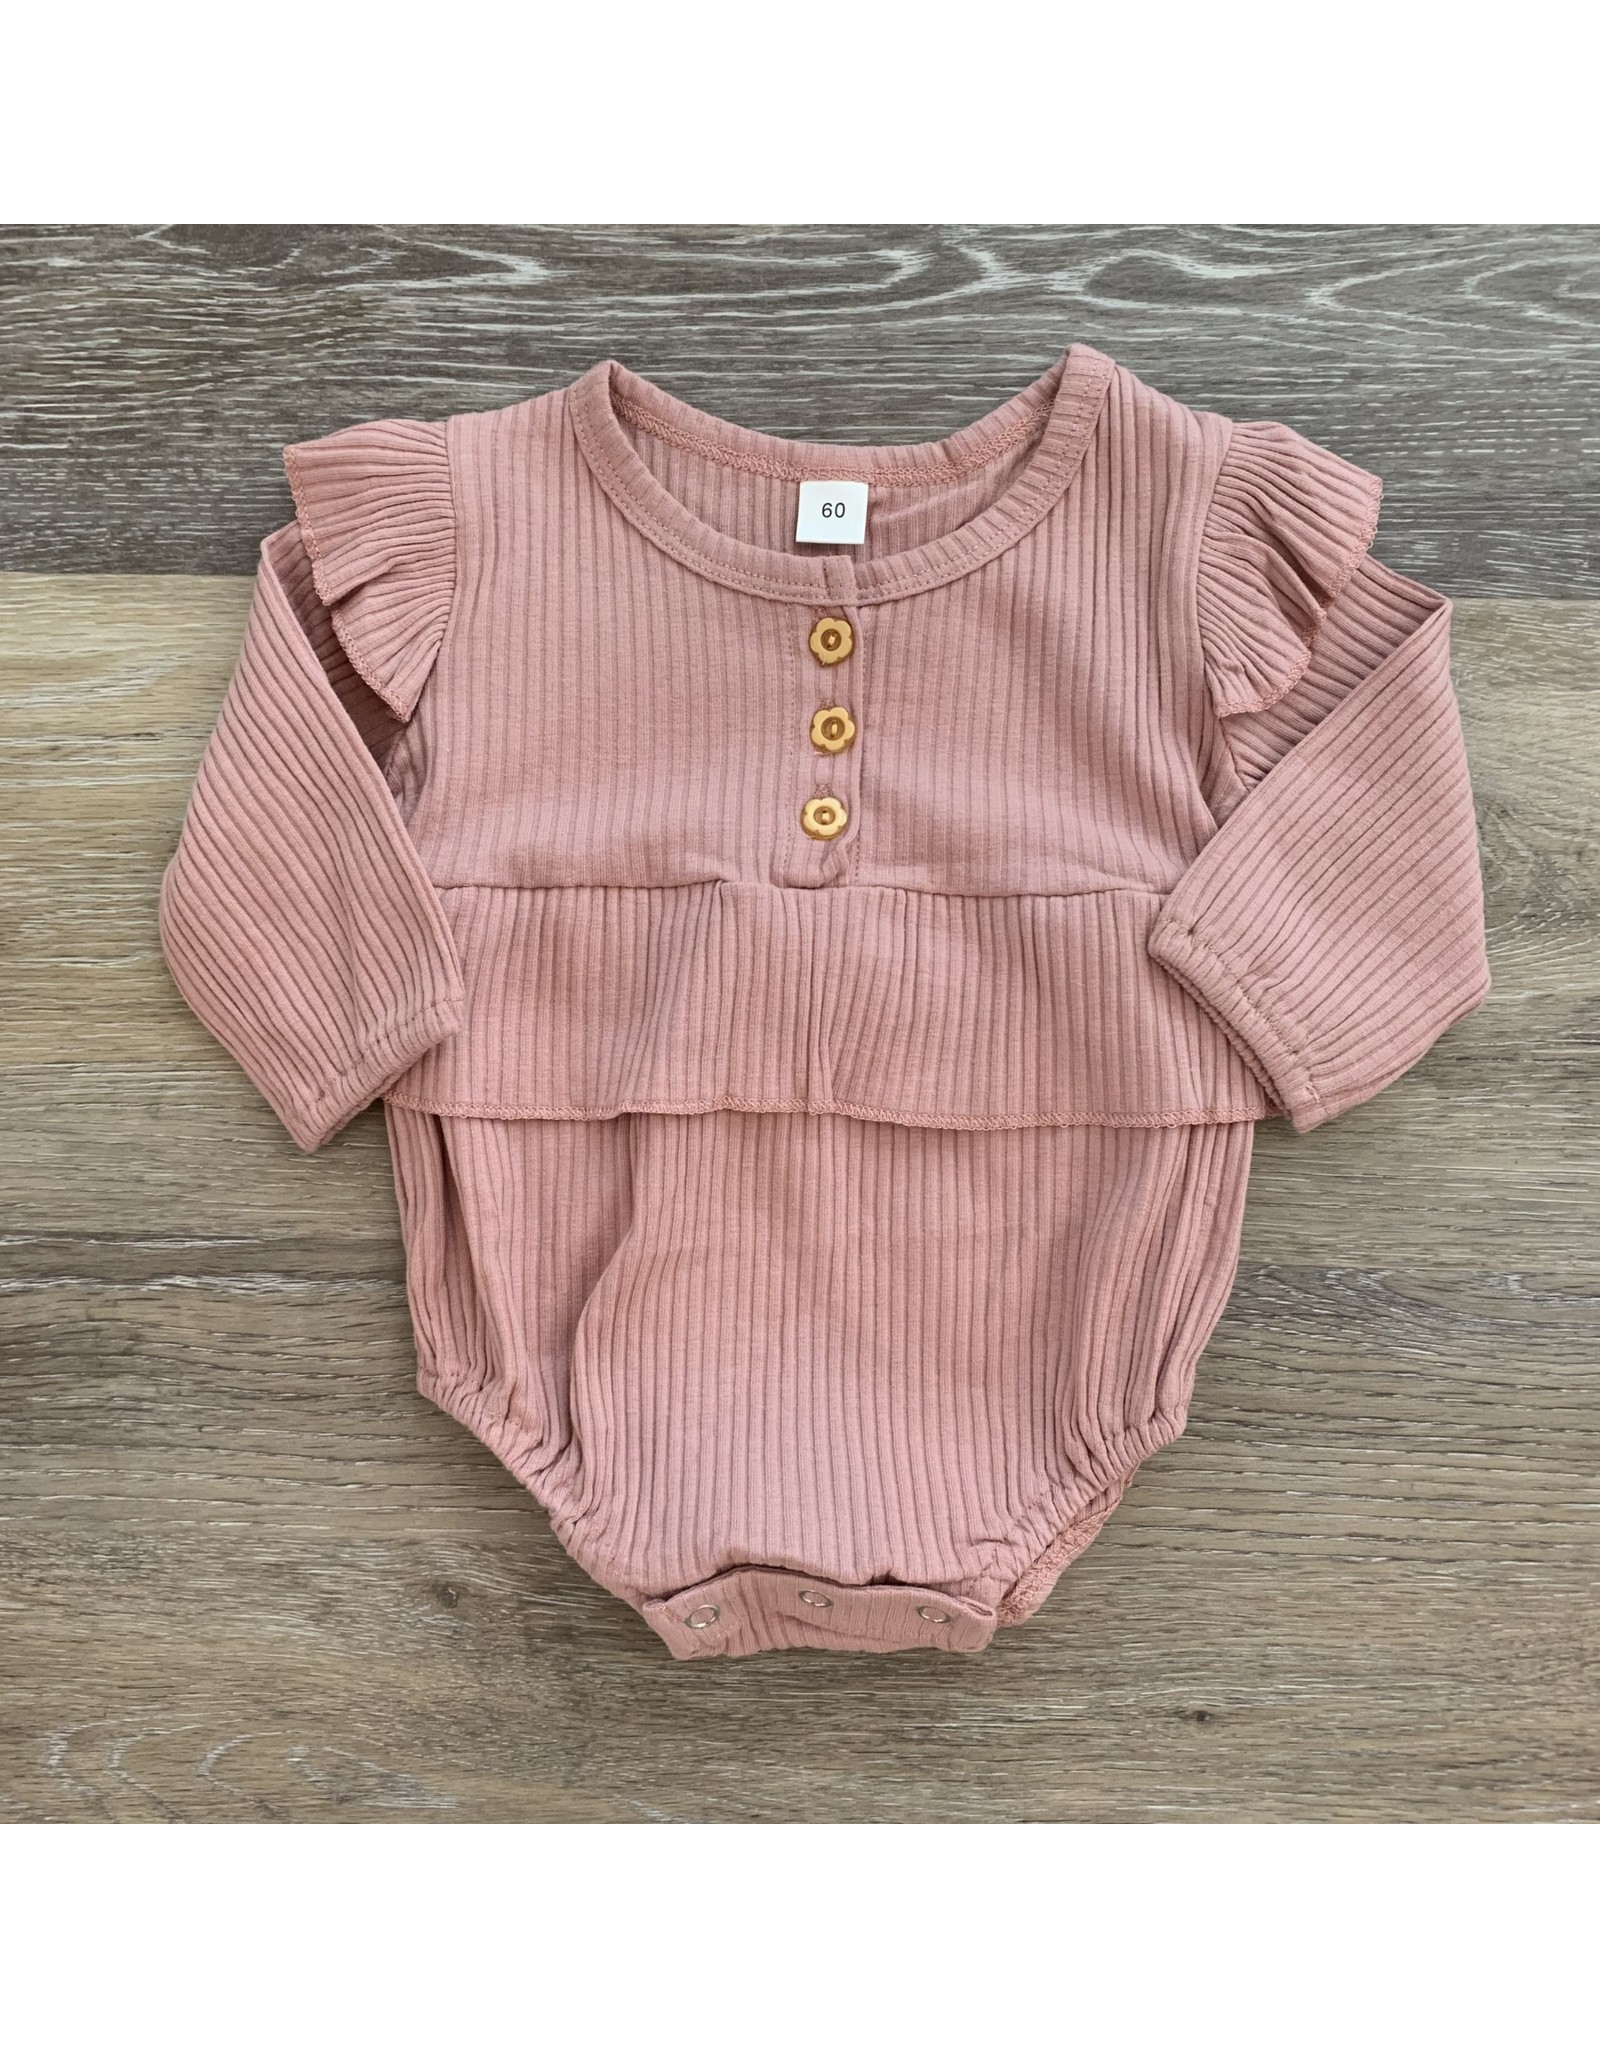 loved by Jade Presley loved by jade presley- Bella Ribbed Button Romper: Pink